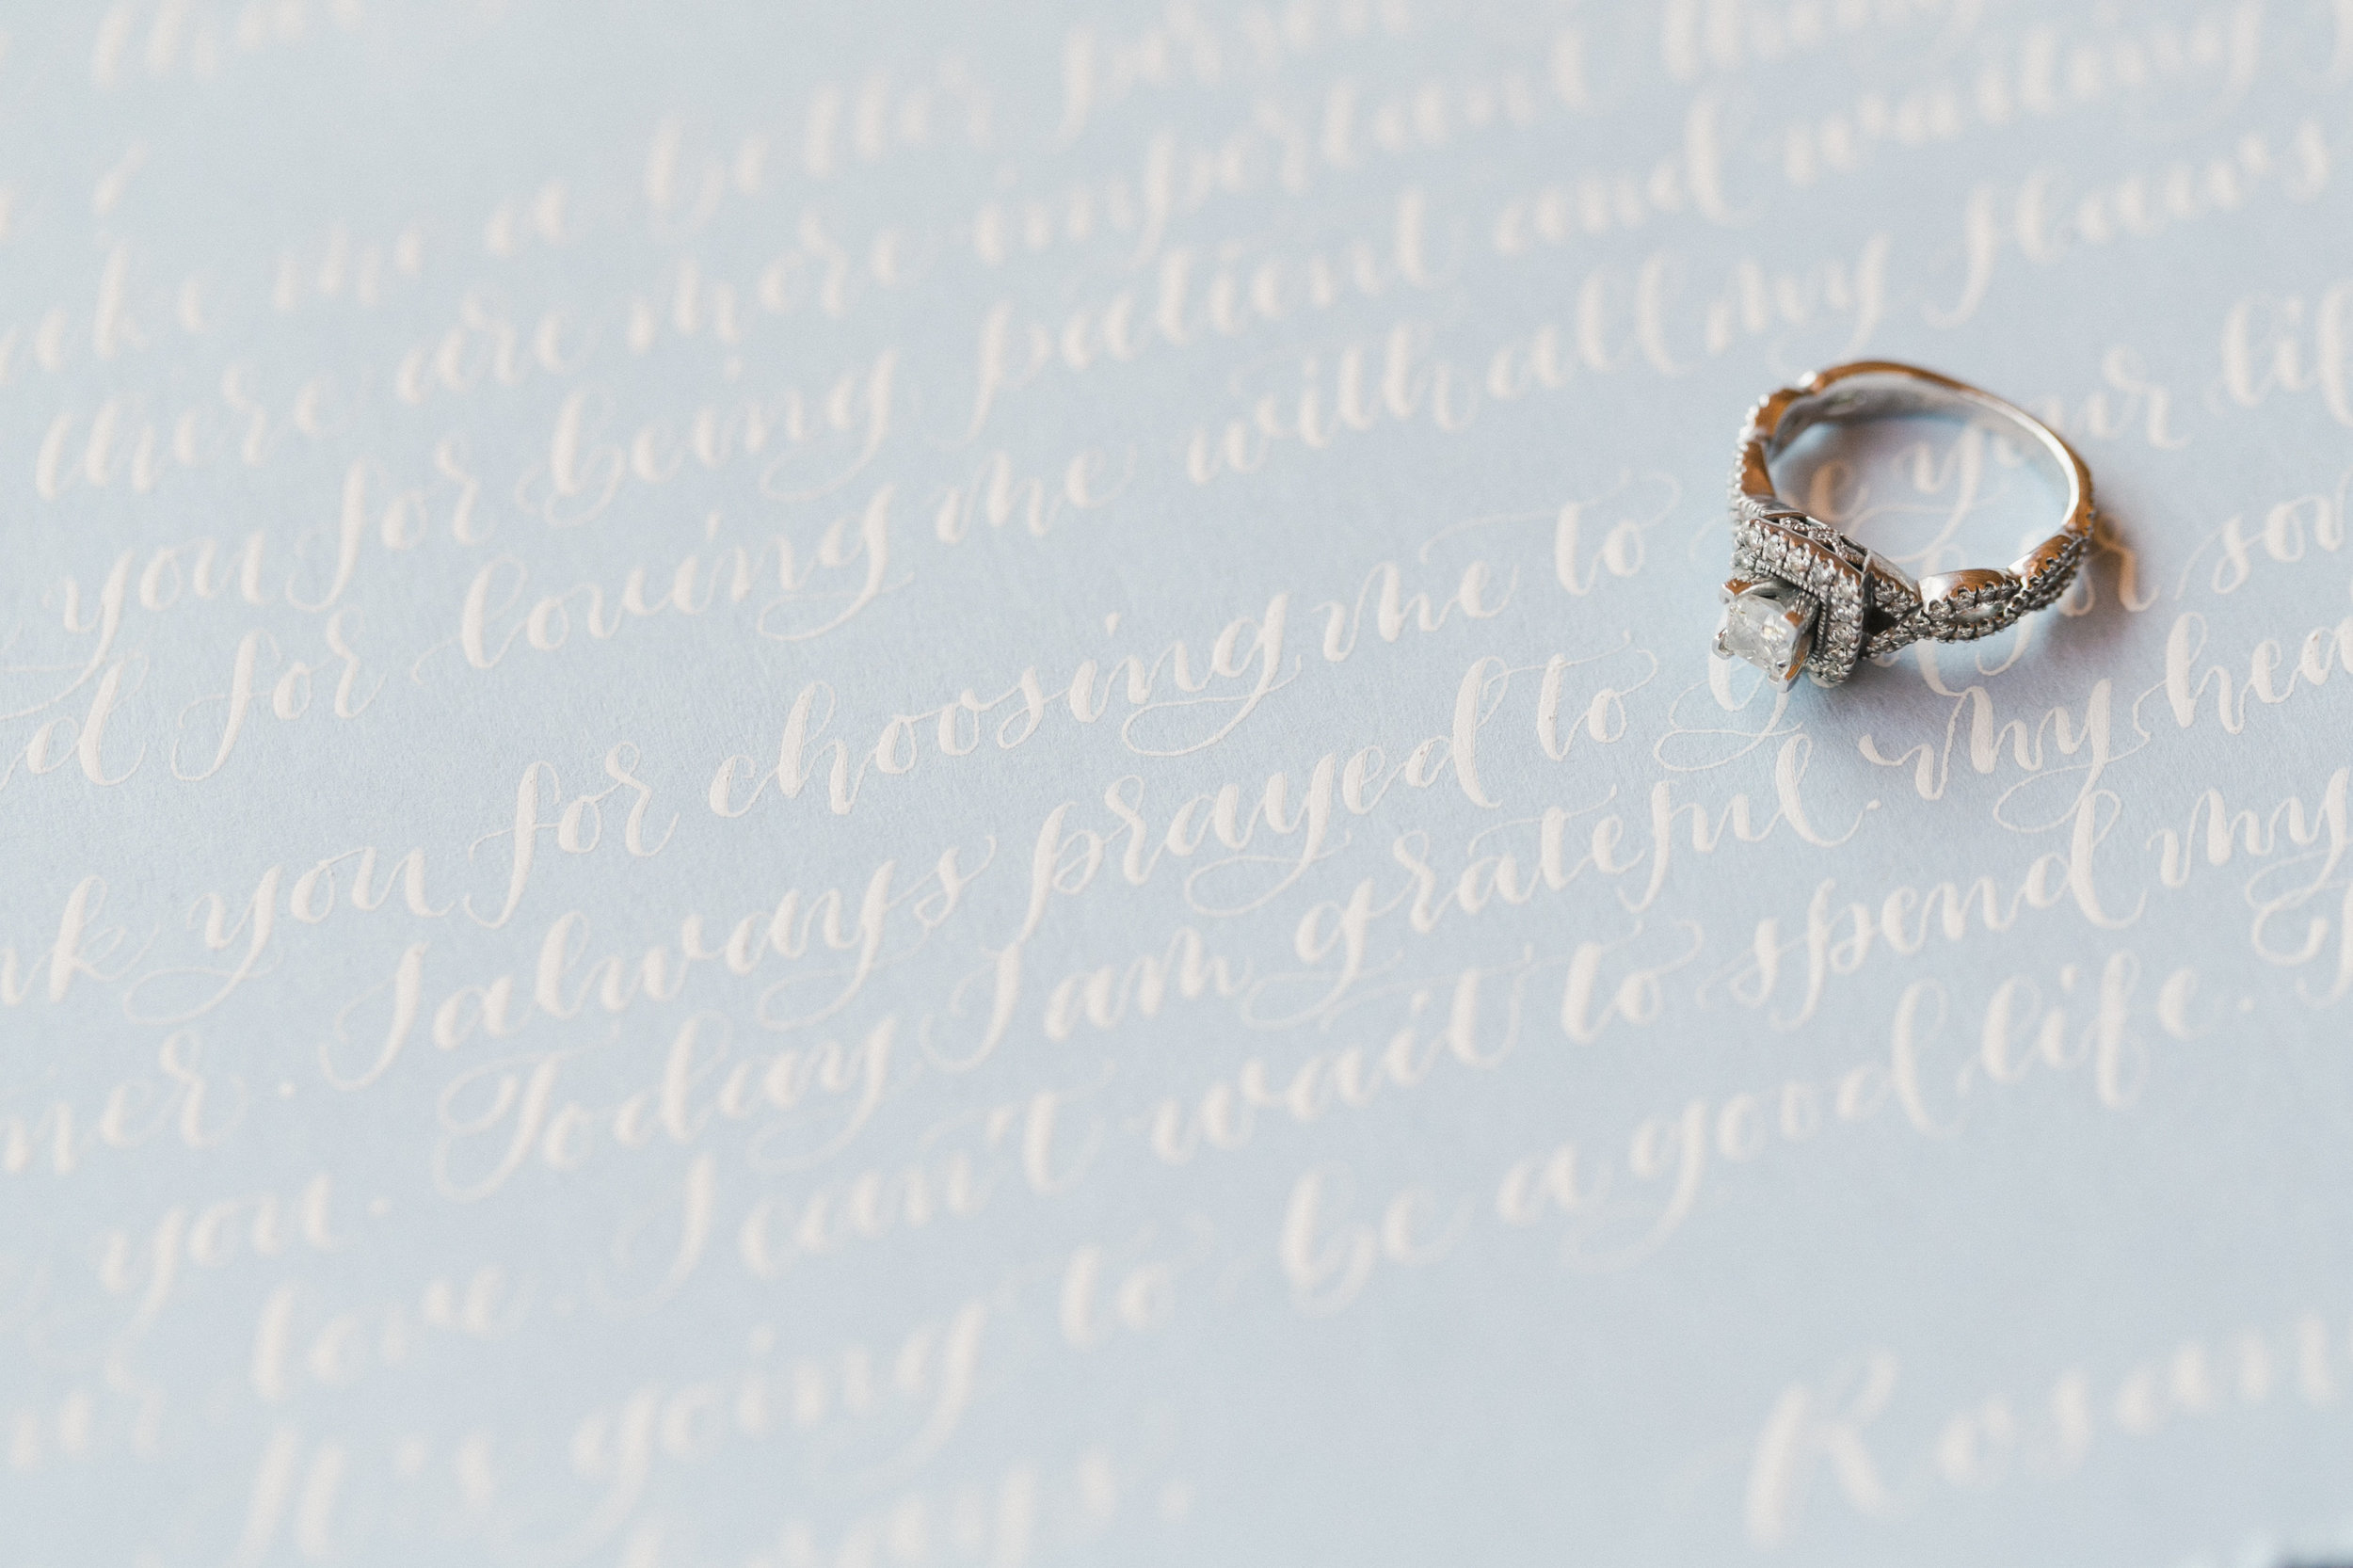 Yosemite wedding vows calligraphy items by paperloveme7.jpg